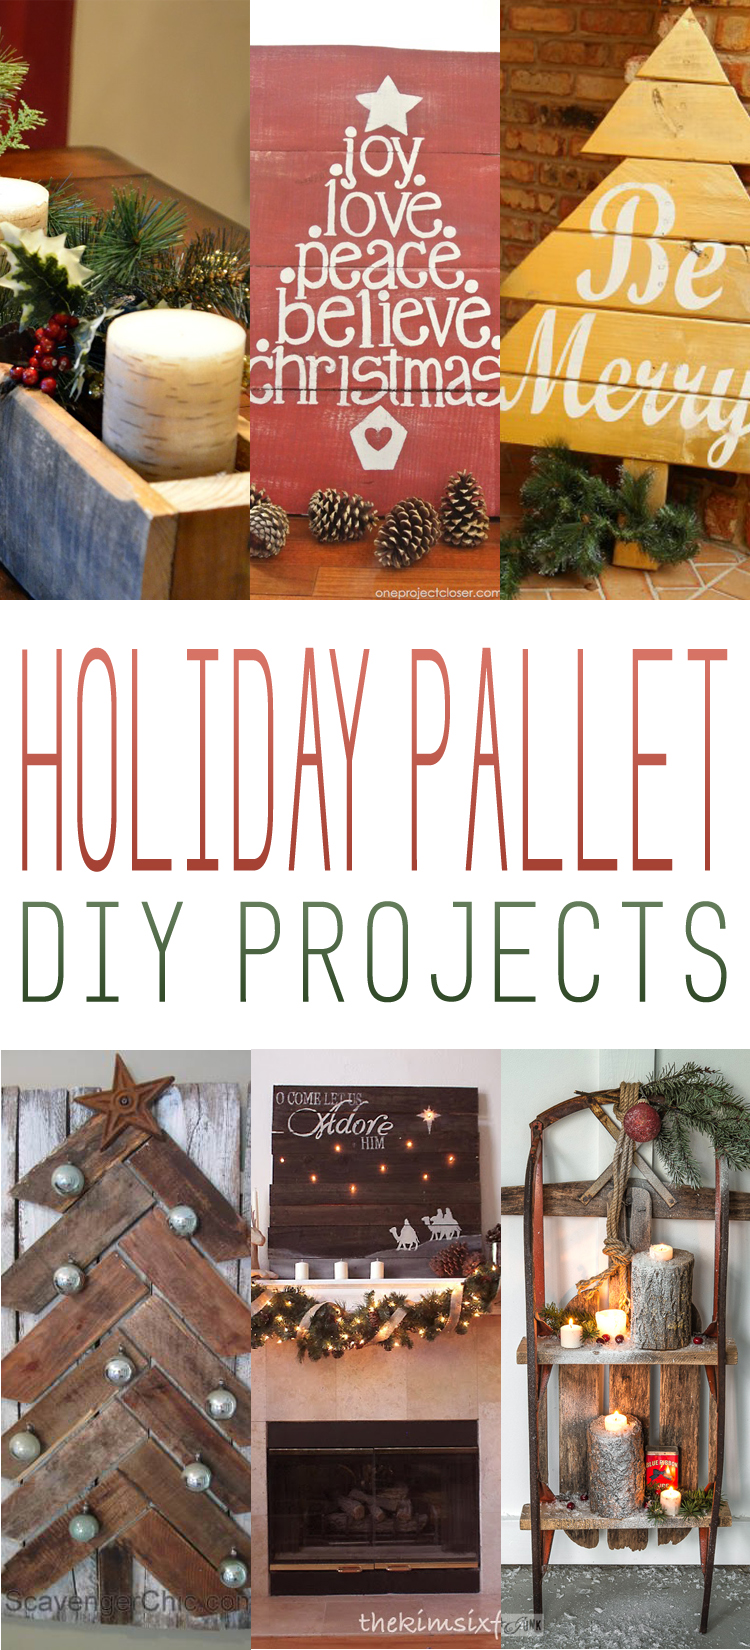 Holiday Pallet DIY Projects - The Cottage Market